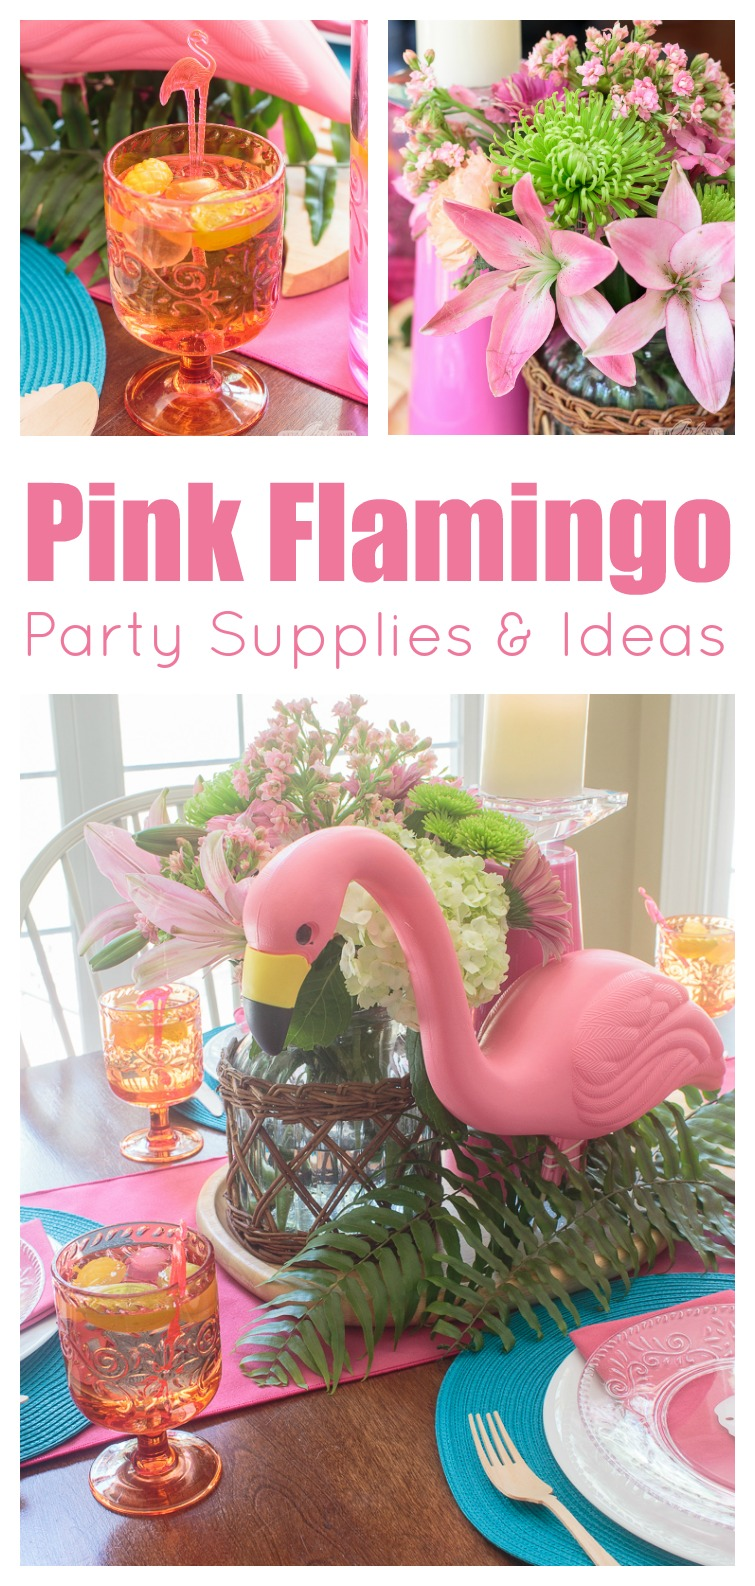 Collage photo showing colorful melamine dishes, pink and aqua table linens and flamingo party decor.